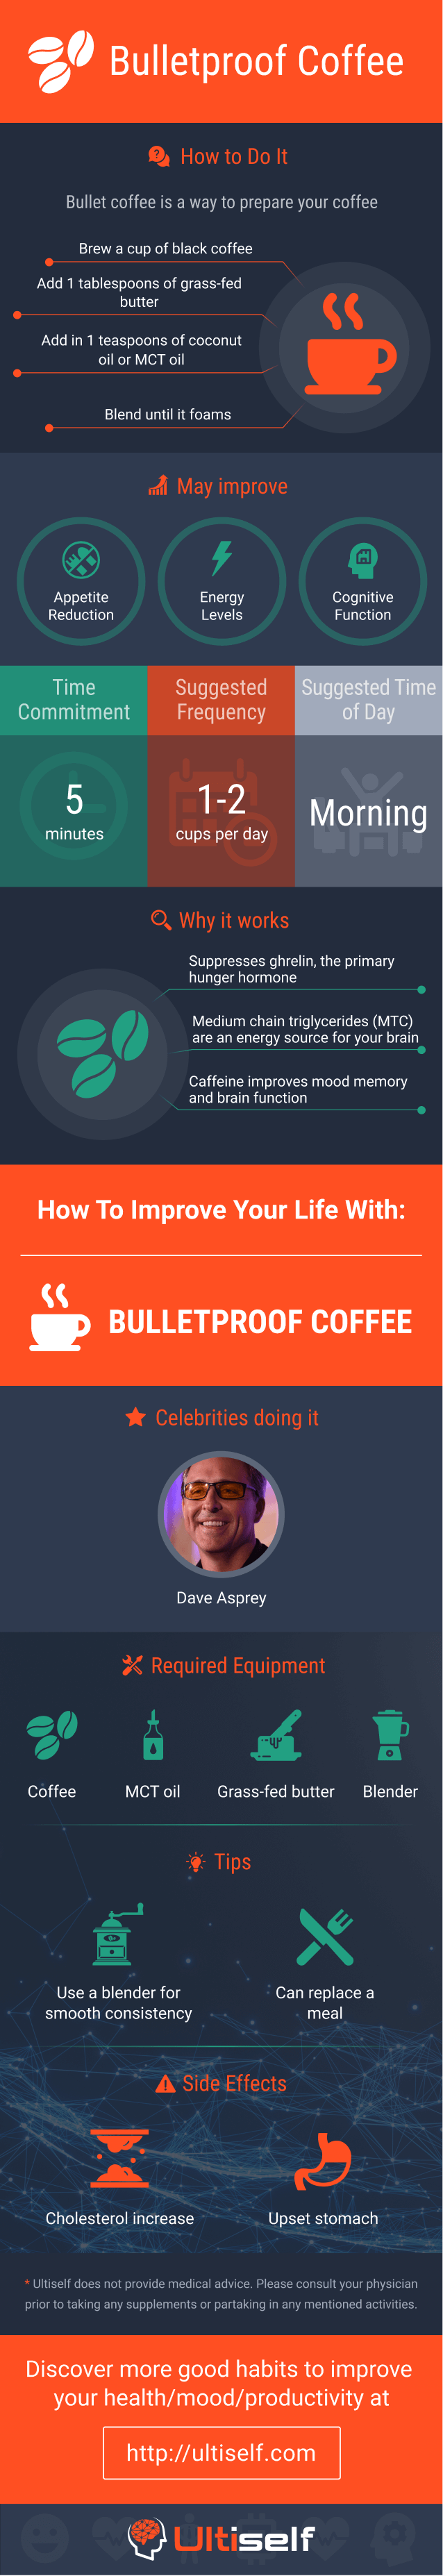 Drink Bullet Coffee infographic